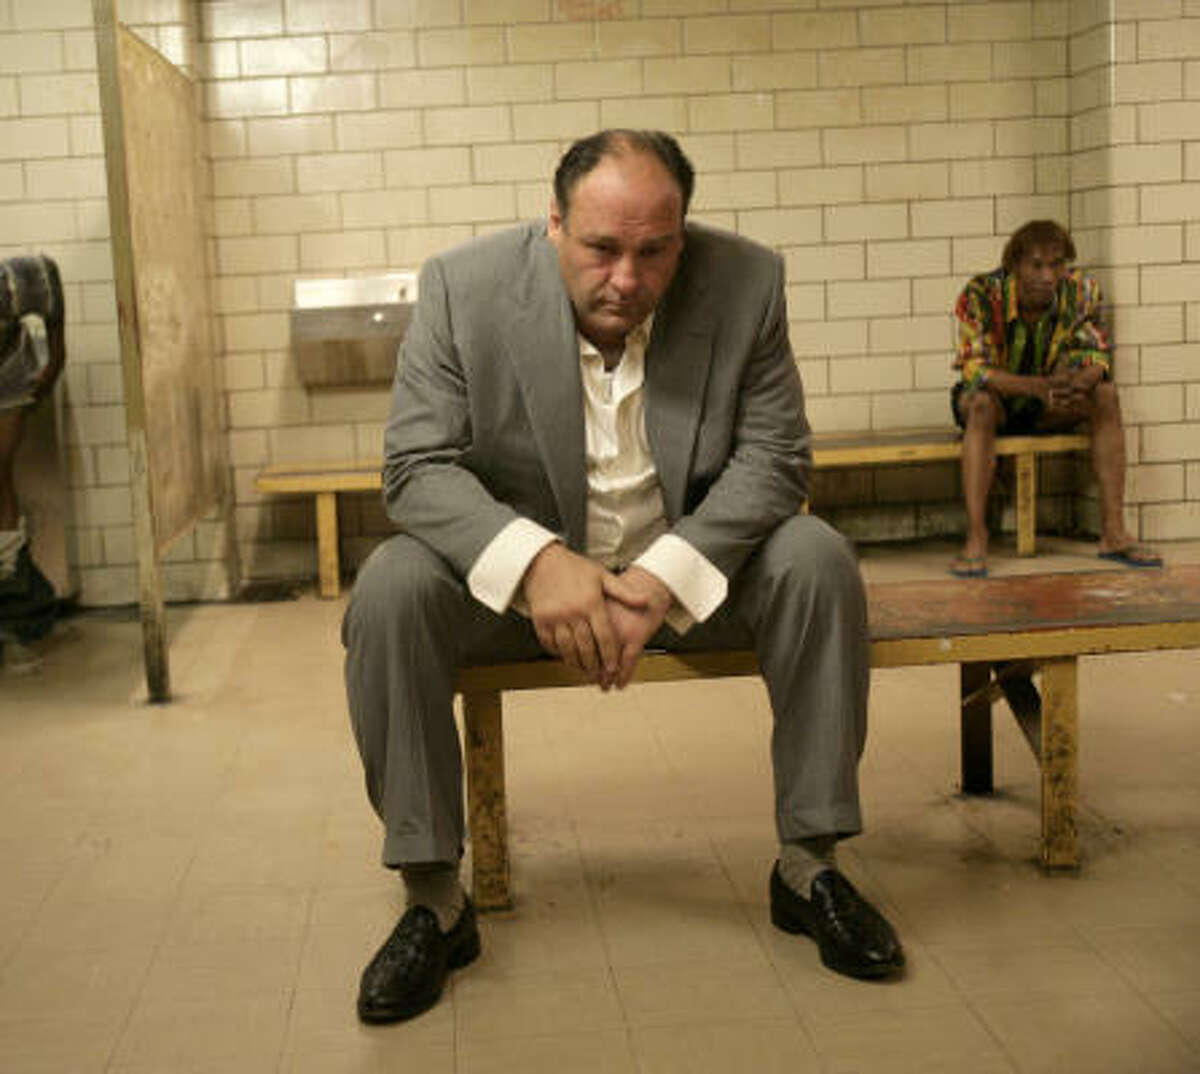 """Tony Soprano (James Gandolfini, The Sopranos): The best TV mobster ever. Like Vito Corleone, a multi-layered family man — but he's more flawed and real. Bonus points: There's a classic Easter egg in the bonus disc of the original """"Godfather"""" set in which Tony and the boys try to watch a bootleg copy of the 1972 movie."""